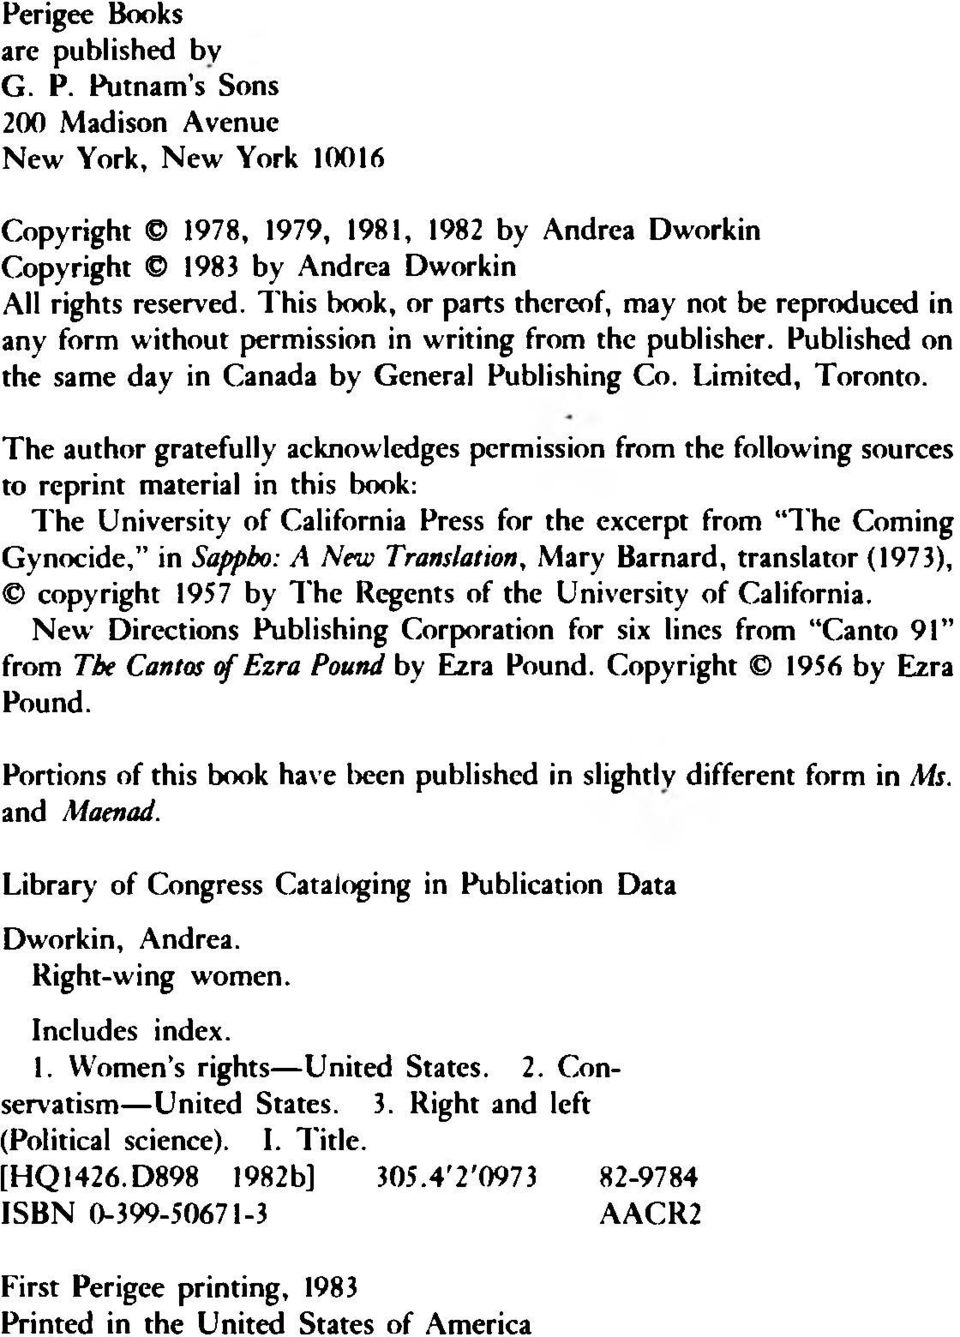 The author gratefully acknowledges permission from the following sources to reprint material in this book: The University of California Press for the excerpt from The Coming Gynocide, in Sappho: A